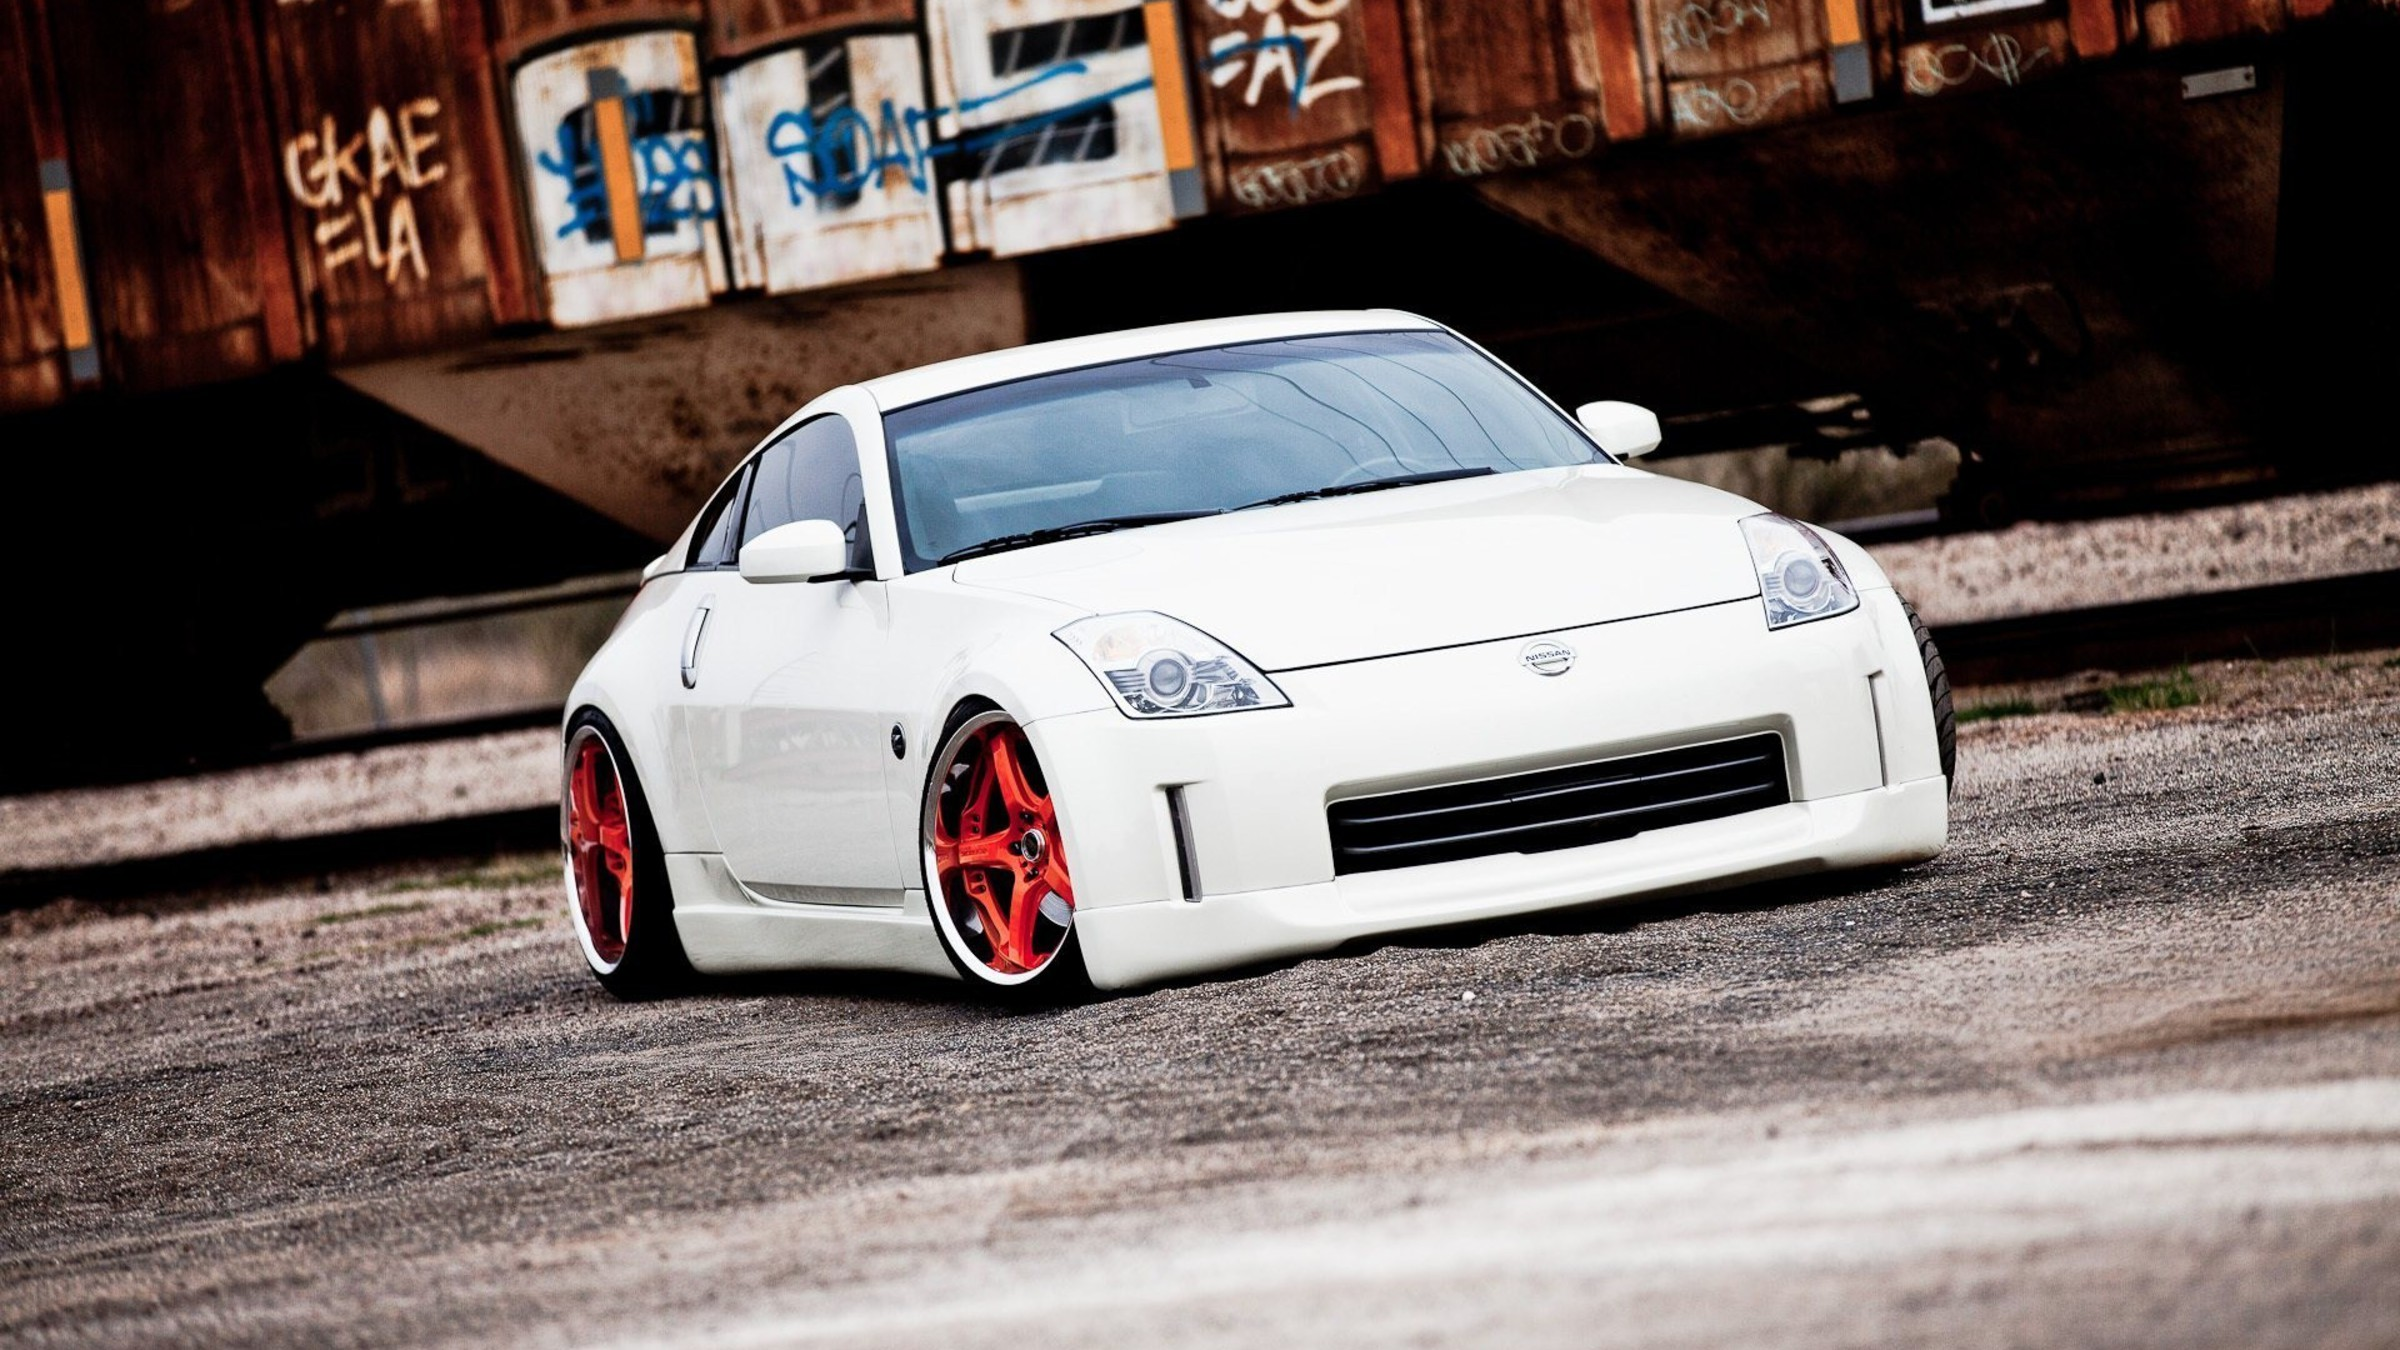 Jdm Japanese Domestic Market Nissan 350z Cars